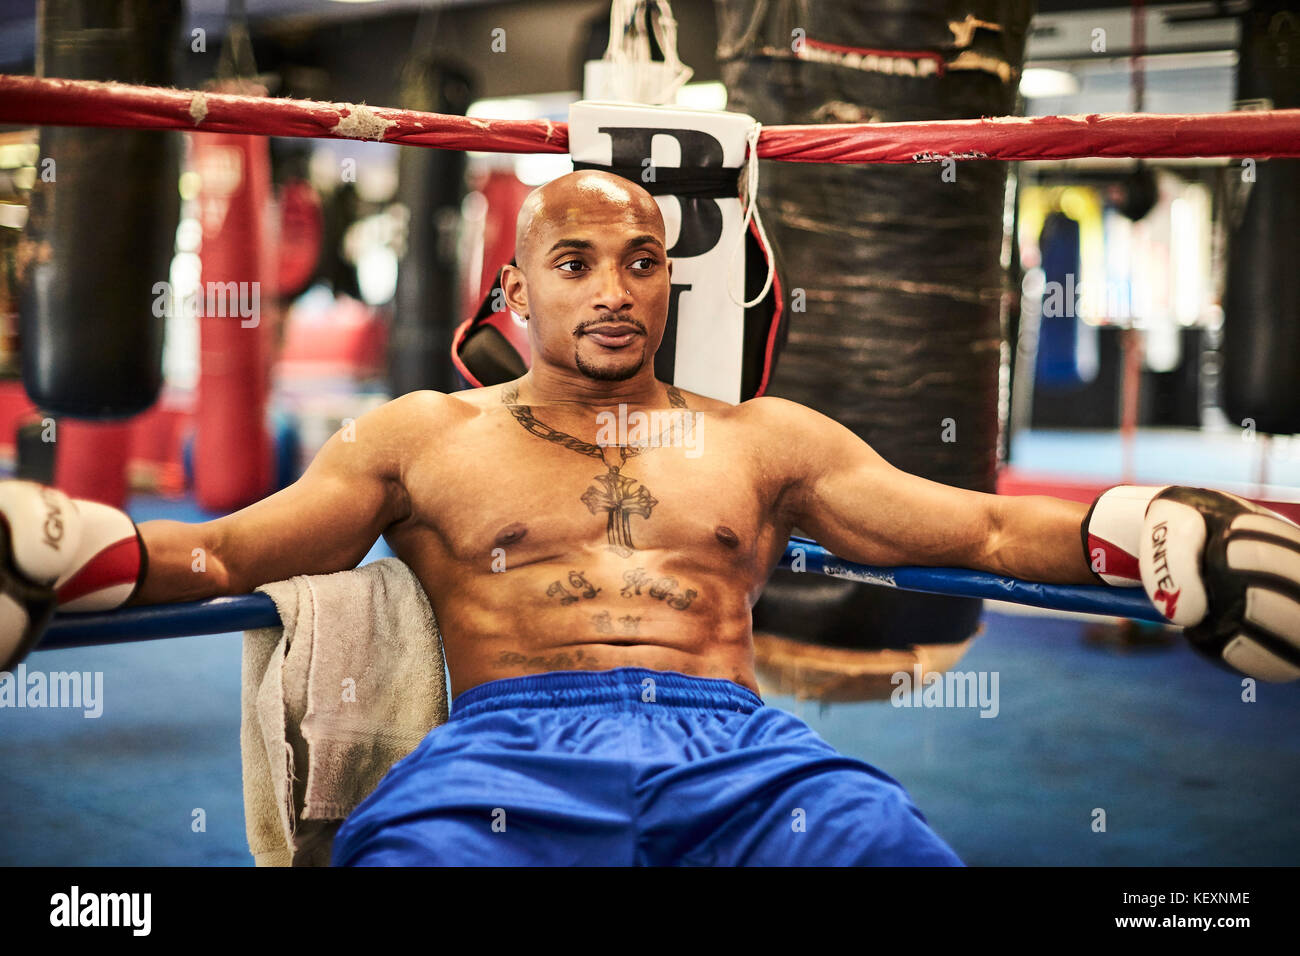 Male boxer resting in boxing ring corner, Taunton, Massachusetts, USA - Stock Image